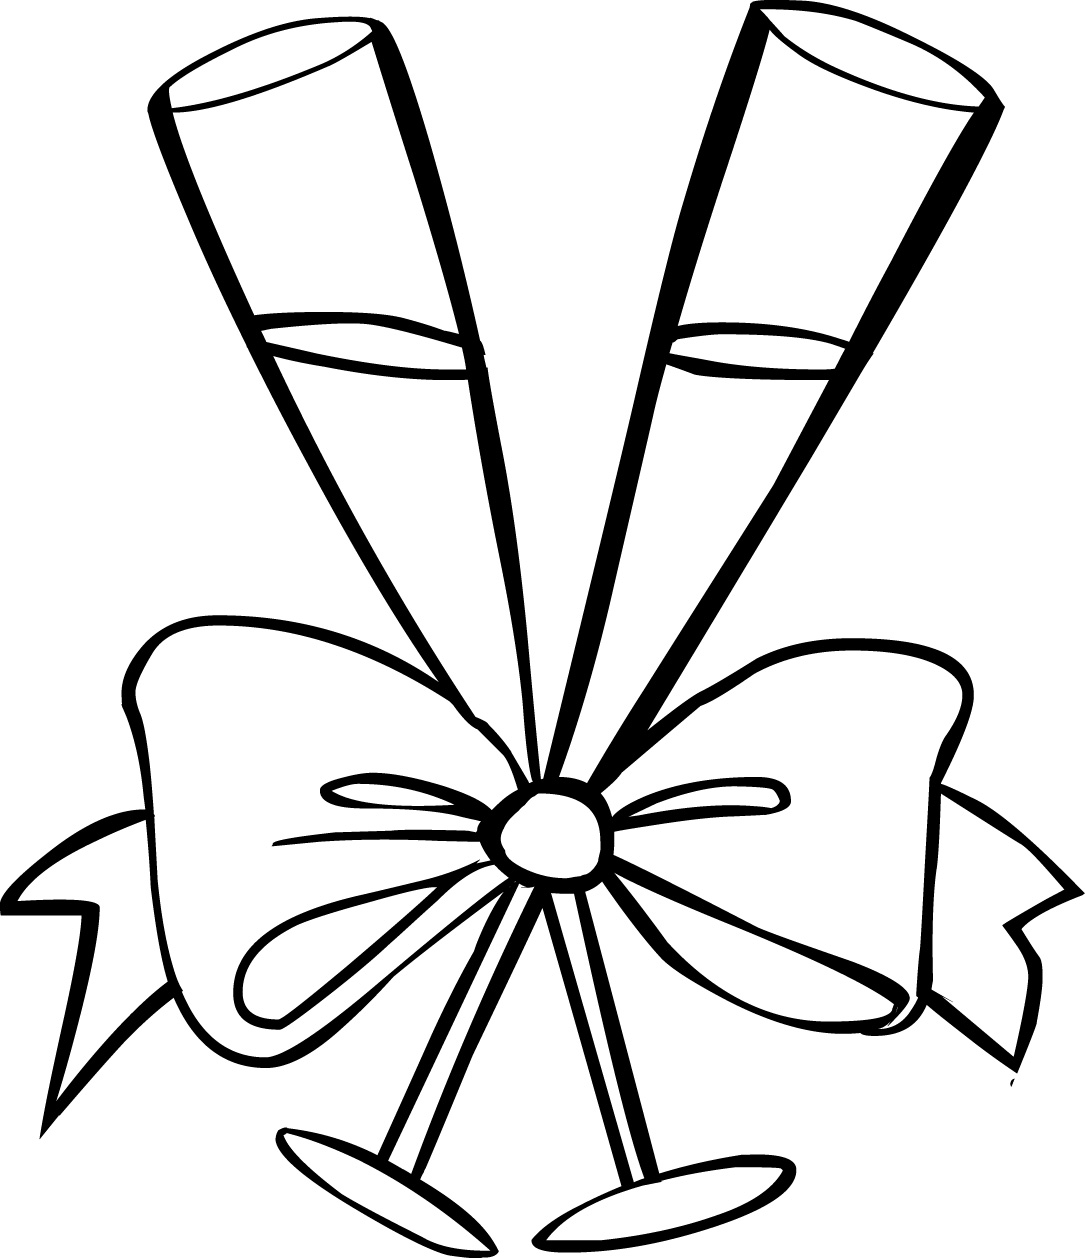 1085x1258 Bow Clipart, Suggestions For Bow Clipart, Download Bow Clipart